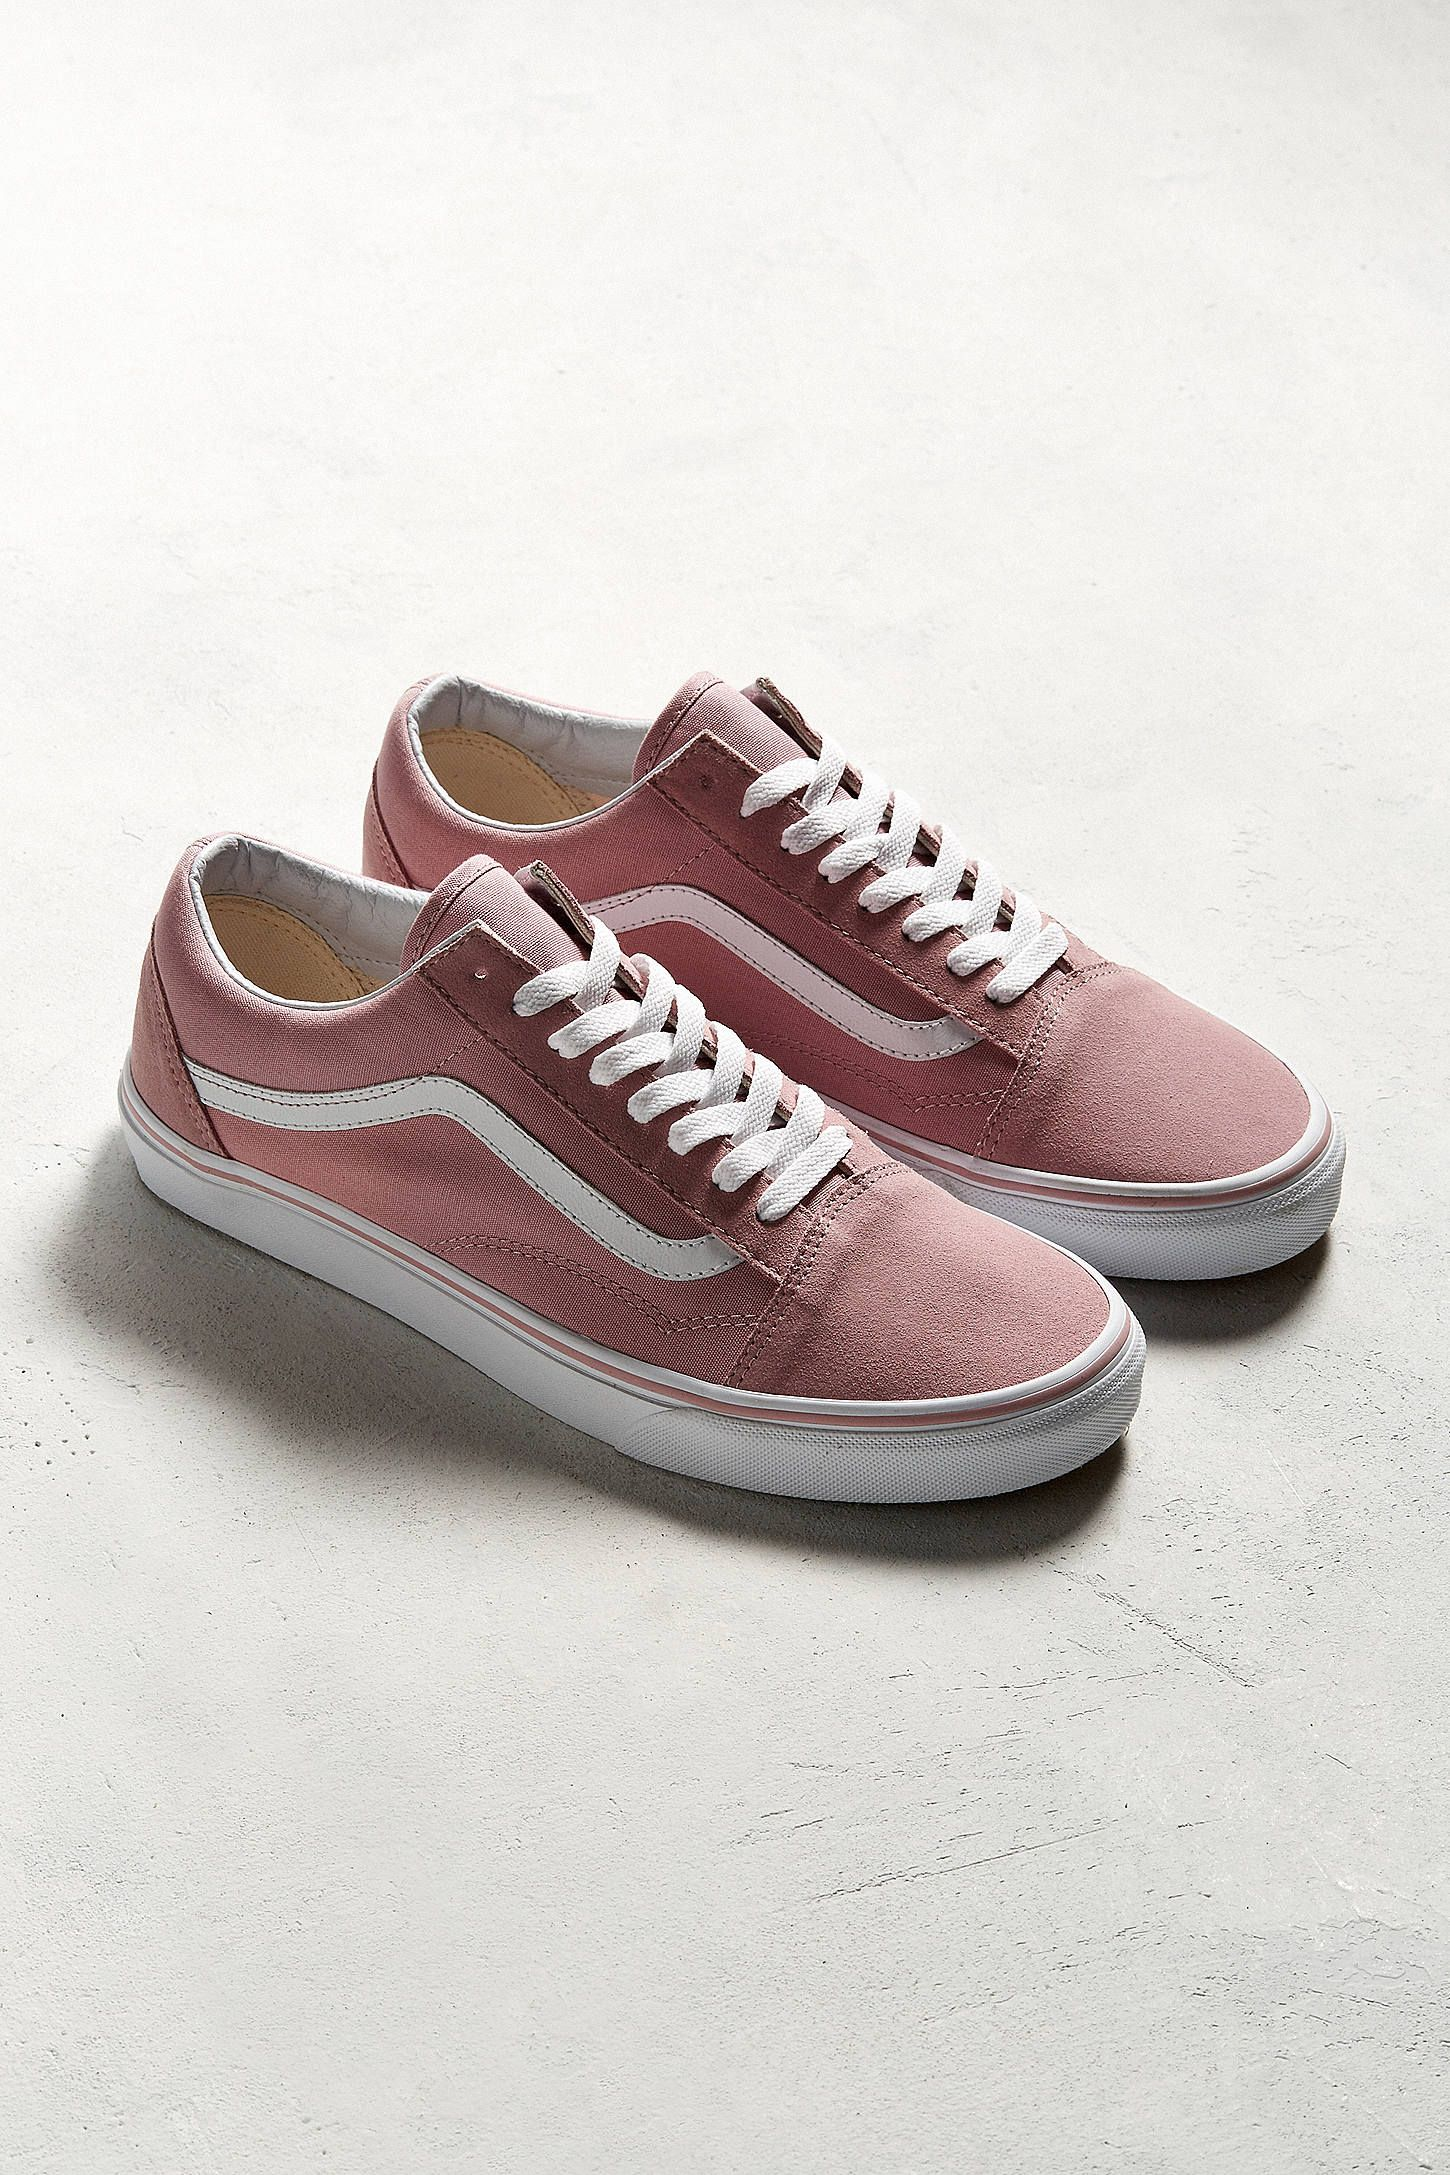 Shop Vans Old Skool Pink Suede Sneaker at Urban Outfitters today. We carry  all the latest styles 74ab71622